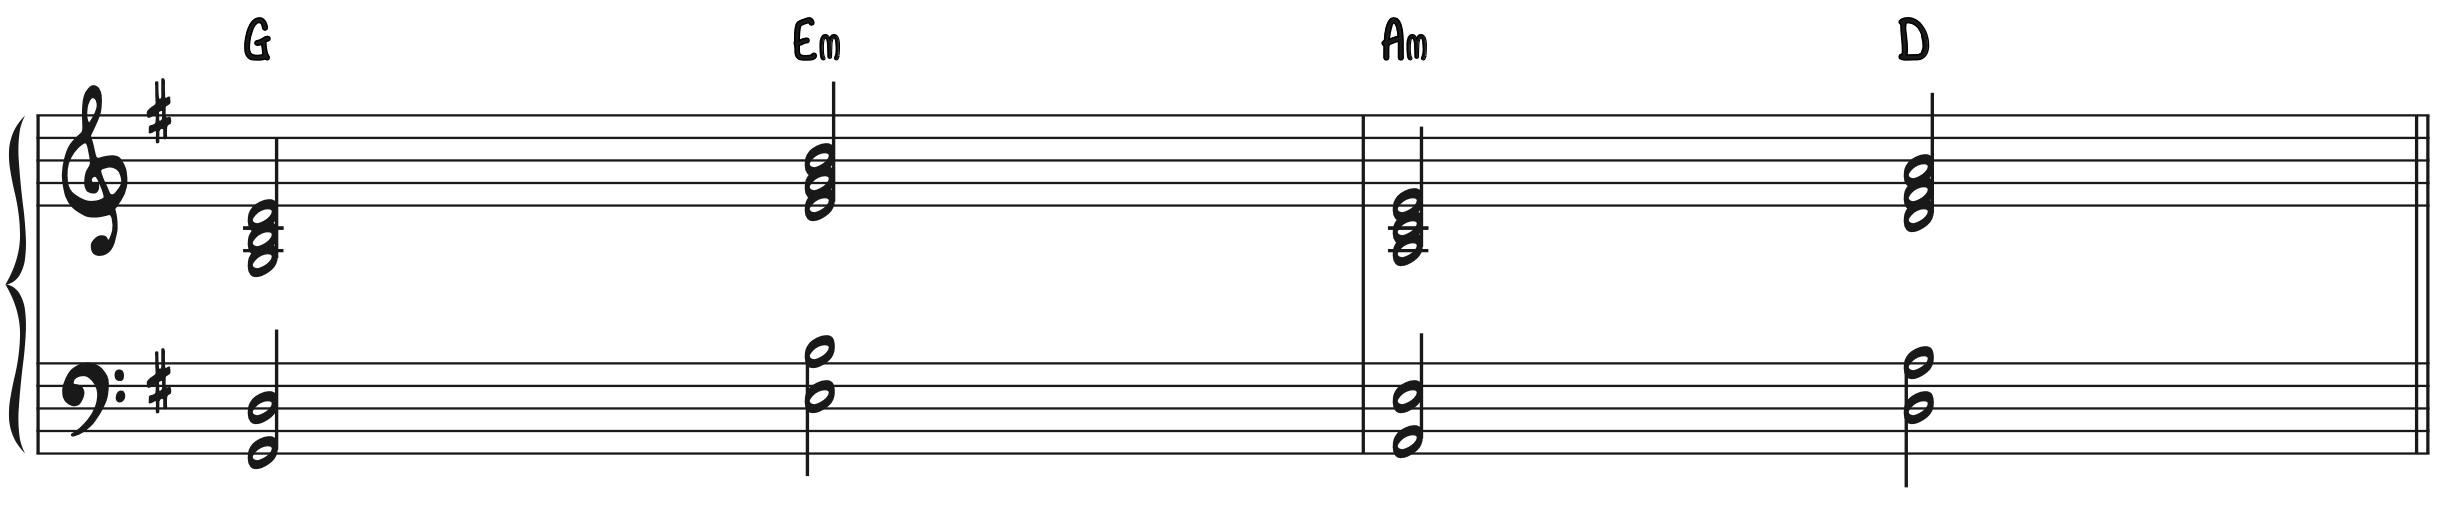 Turnaround Progression in G with root position chords G Em Am D 1-6-2-5